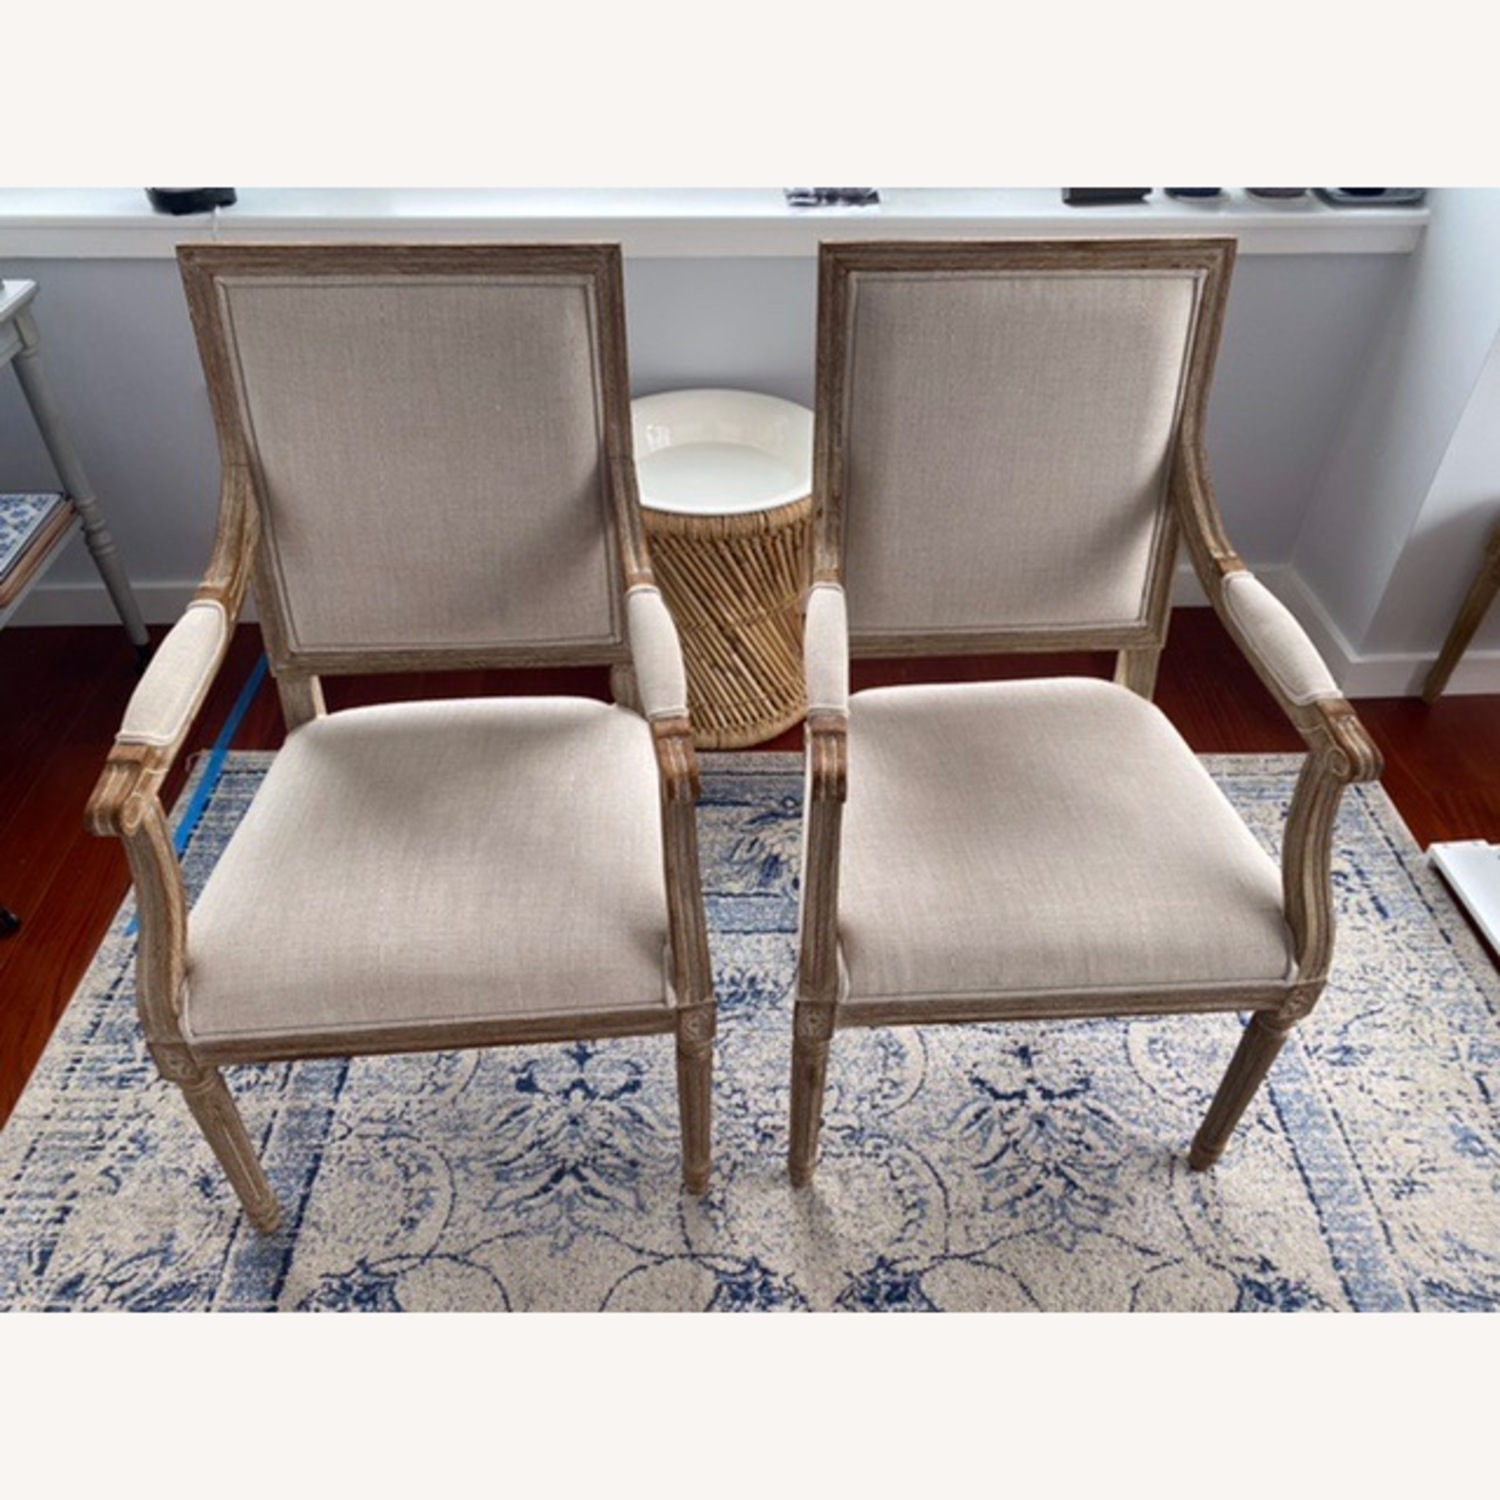 Restoration Hardware French Square Upholstered Armchair - image-1